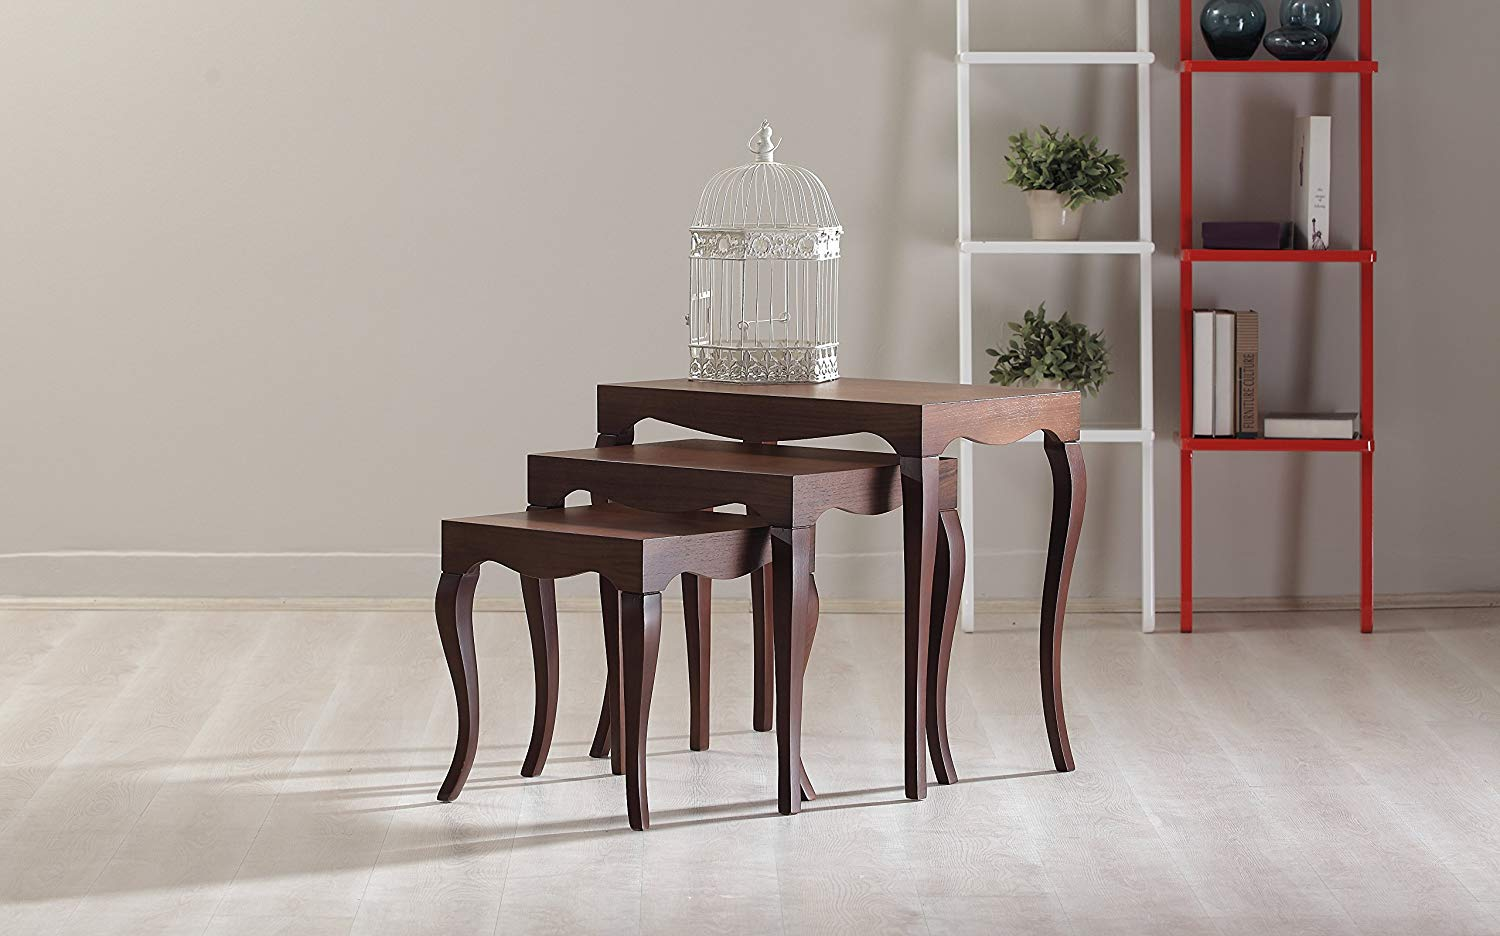 La Viola Décor New Modern Contemporary Victor Nested Tables (3 Tables) #7341 in Walnut Veneer